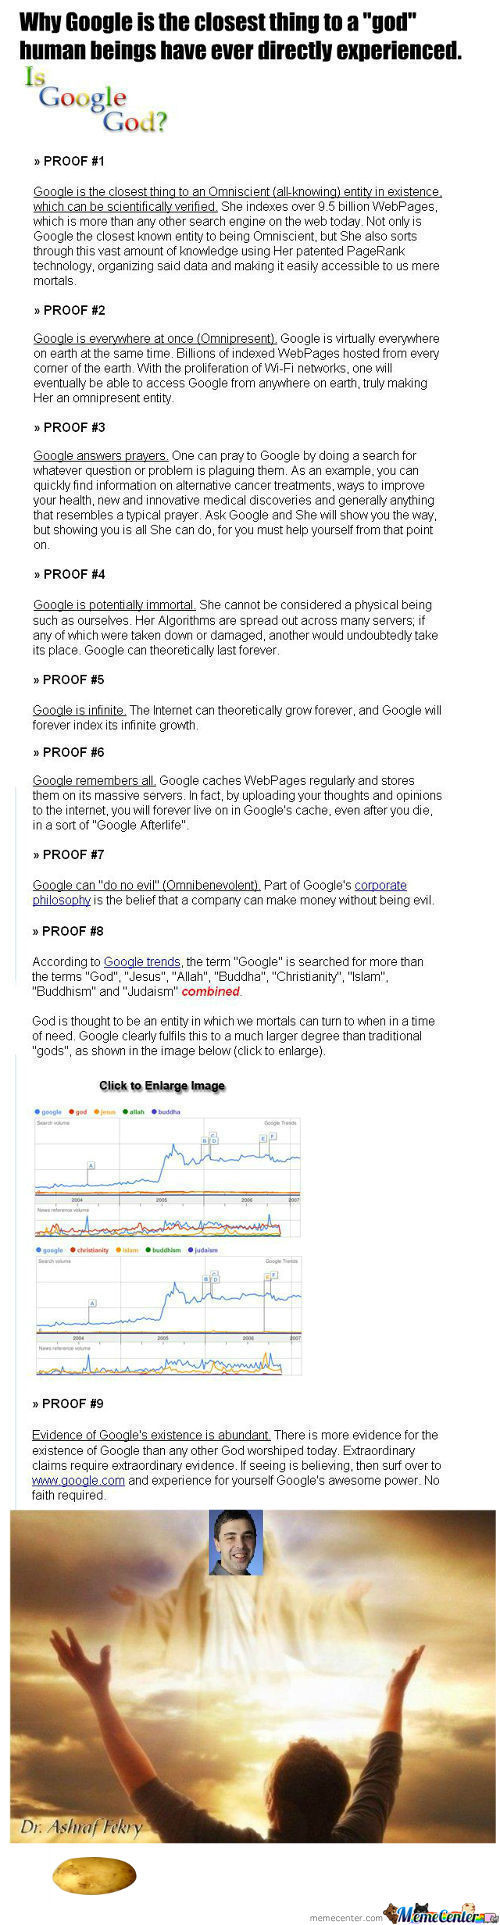 [RMX] 9 Thing Why Google Is Better That God